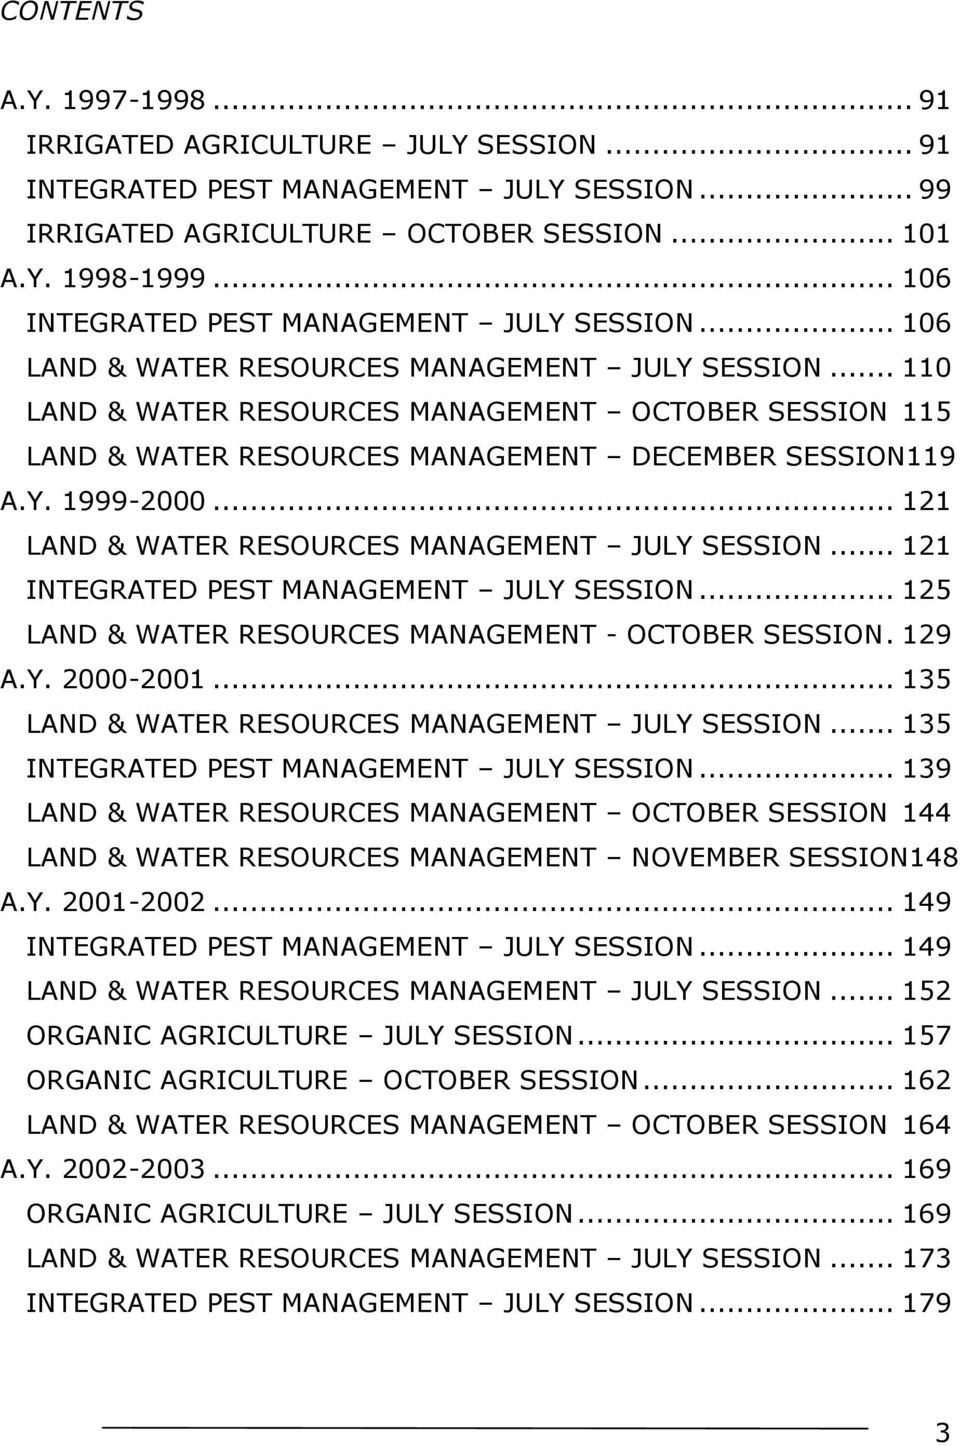 .. 110 LAND & WATER RESOURCES MANAGEMENT OCTOBER SESSION 115 LAND & WATER RESOURCES MANAGEMENT DECEMBER SESSION119 A.Y. 1999-2000... 121 LAND & WATER RESOURCES MANAGEMENT JULY SESSION.